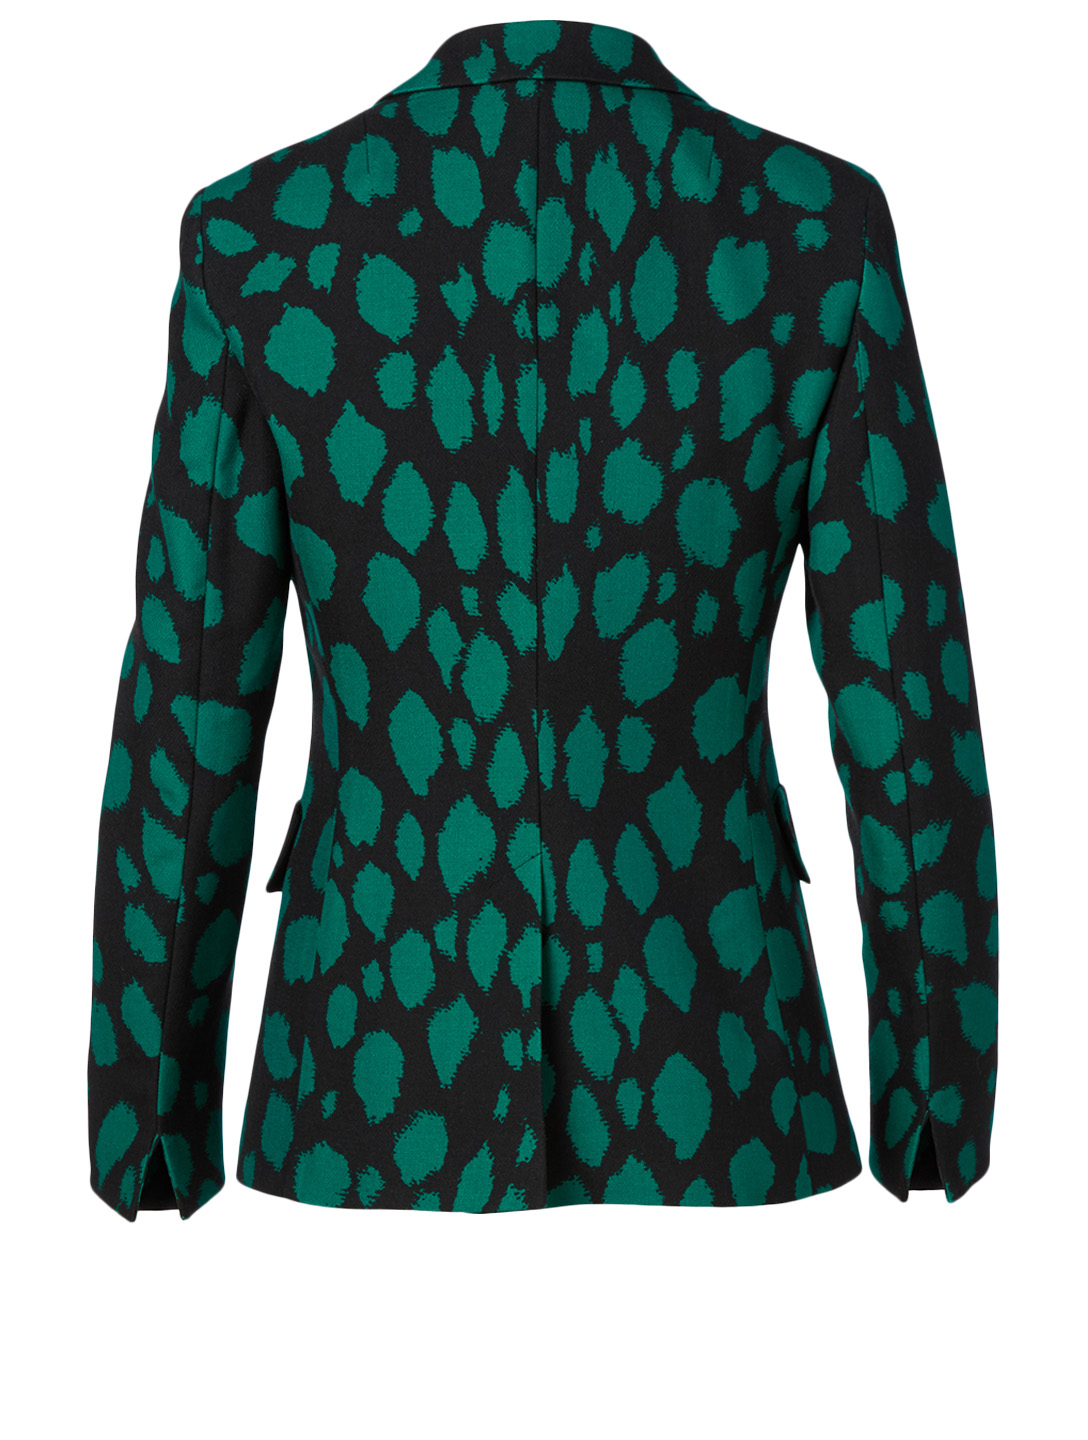 AKRIS PUNTO Wool Blazer In Leopard Print Women's Green